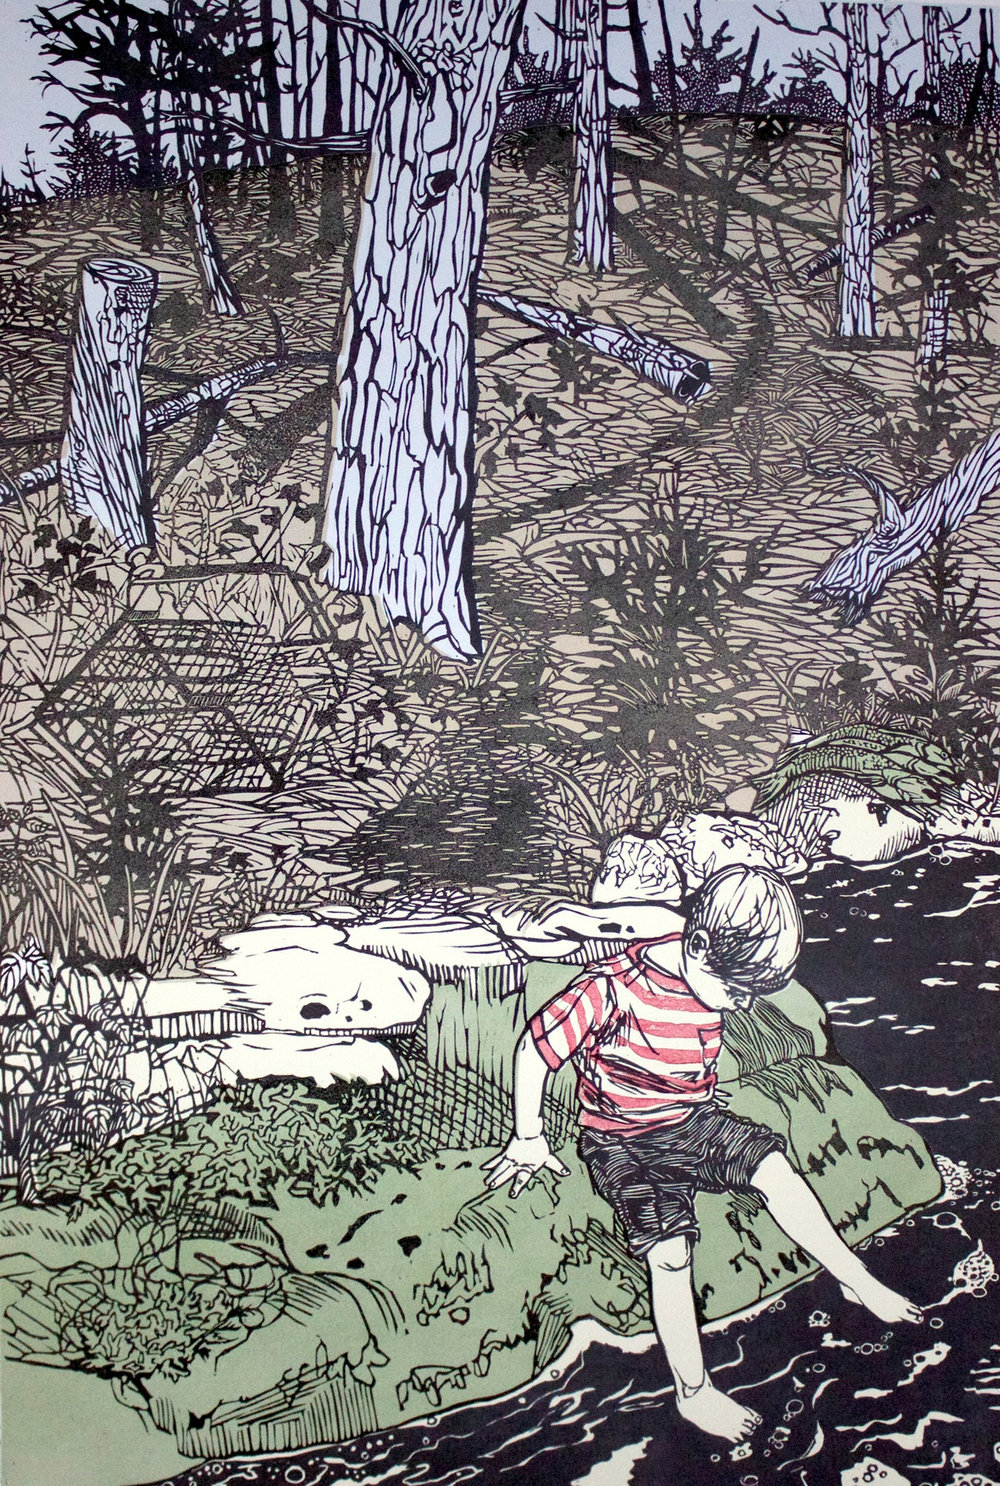 Laura Peturson   Testing the Water   linocut  25 x 16.75 inches, APS 243G